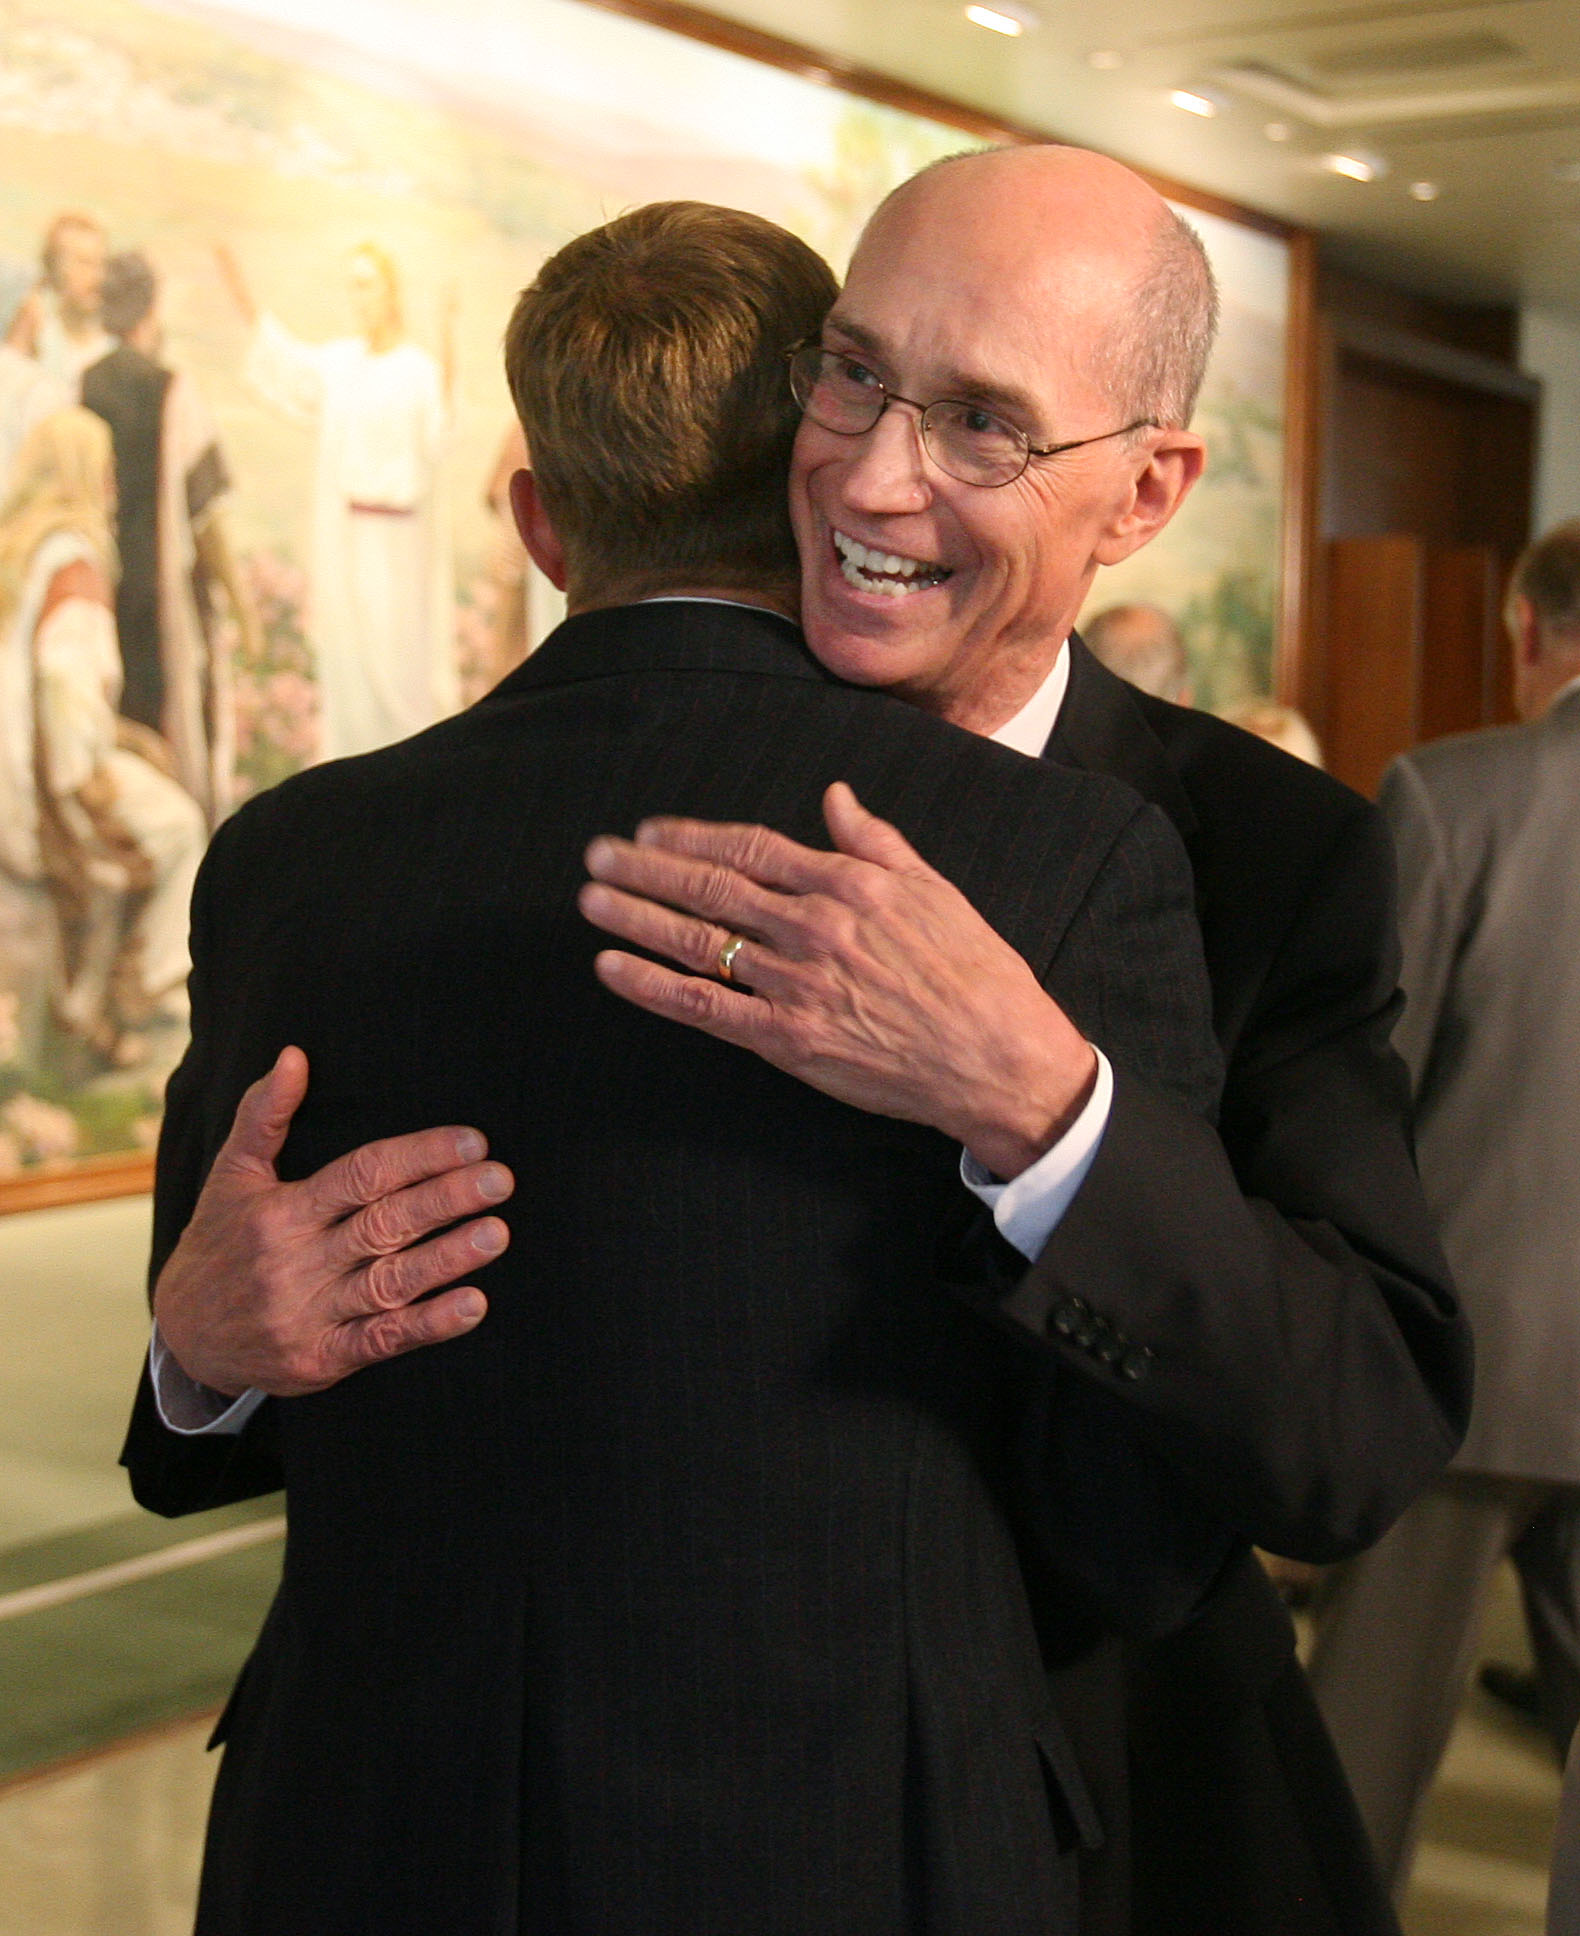 President Henry B. Eyring hugs his son John Eyring after a press conference between sessions of LDS General Conference Oct 6, 2007 in Salt Lake City.